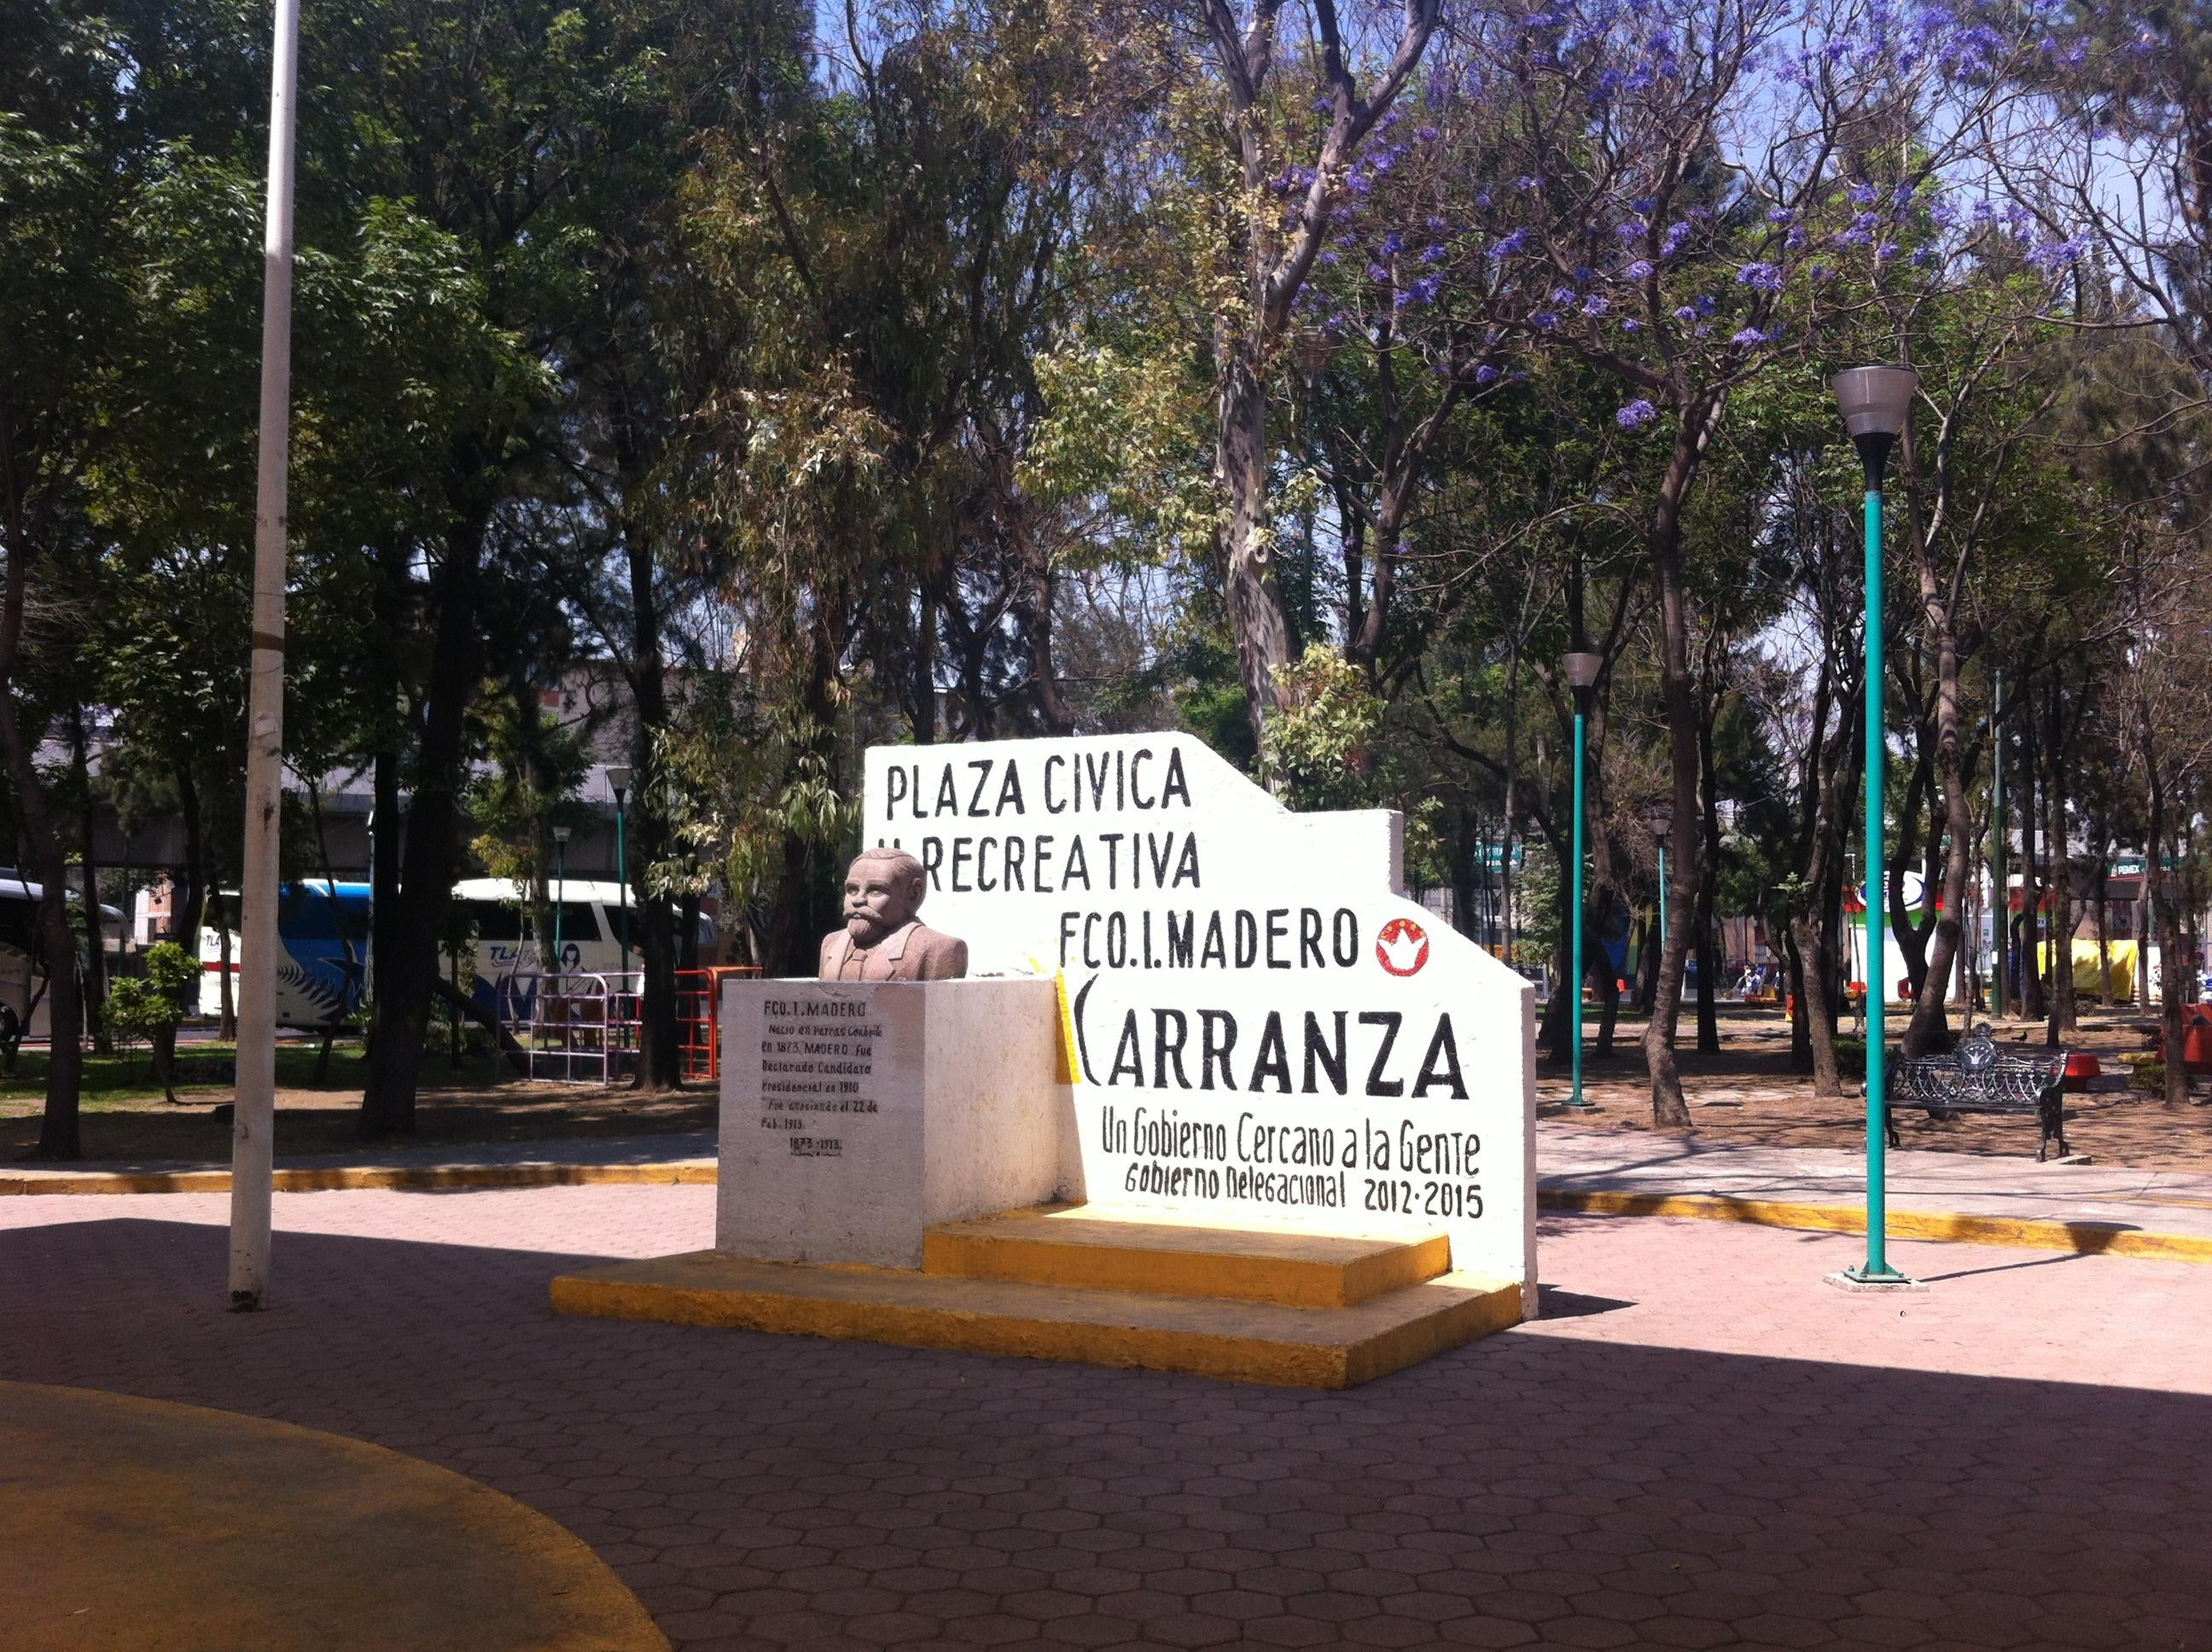 Parque Recreativo Francisco I. Madero